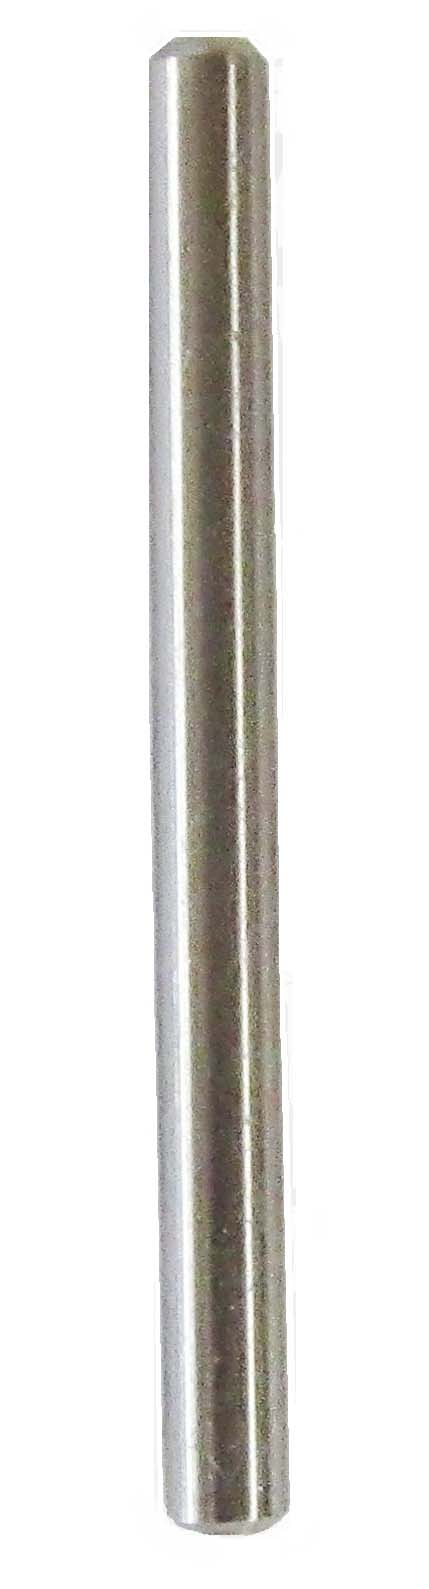 "1/8"" X 1 1/2"" Stainless Dowel Pin for milk inlet"